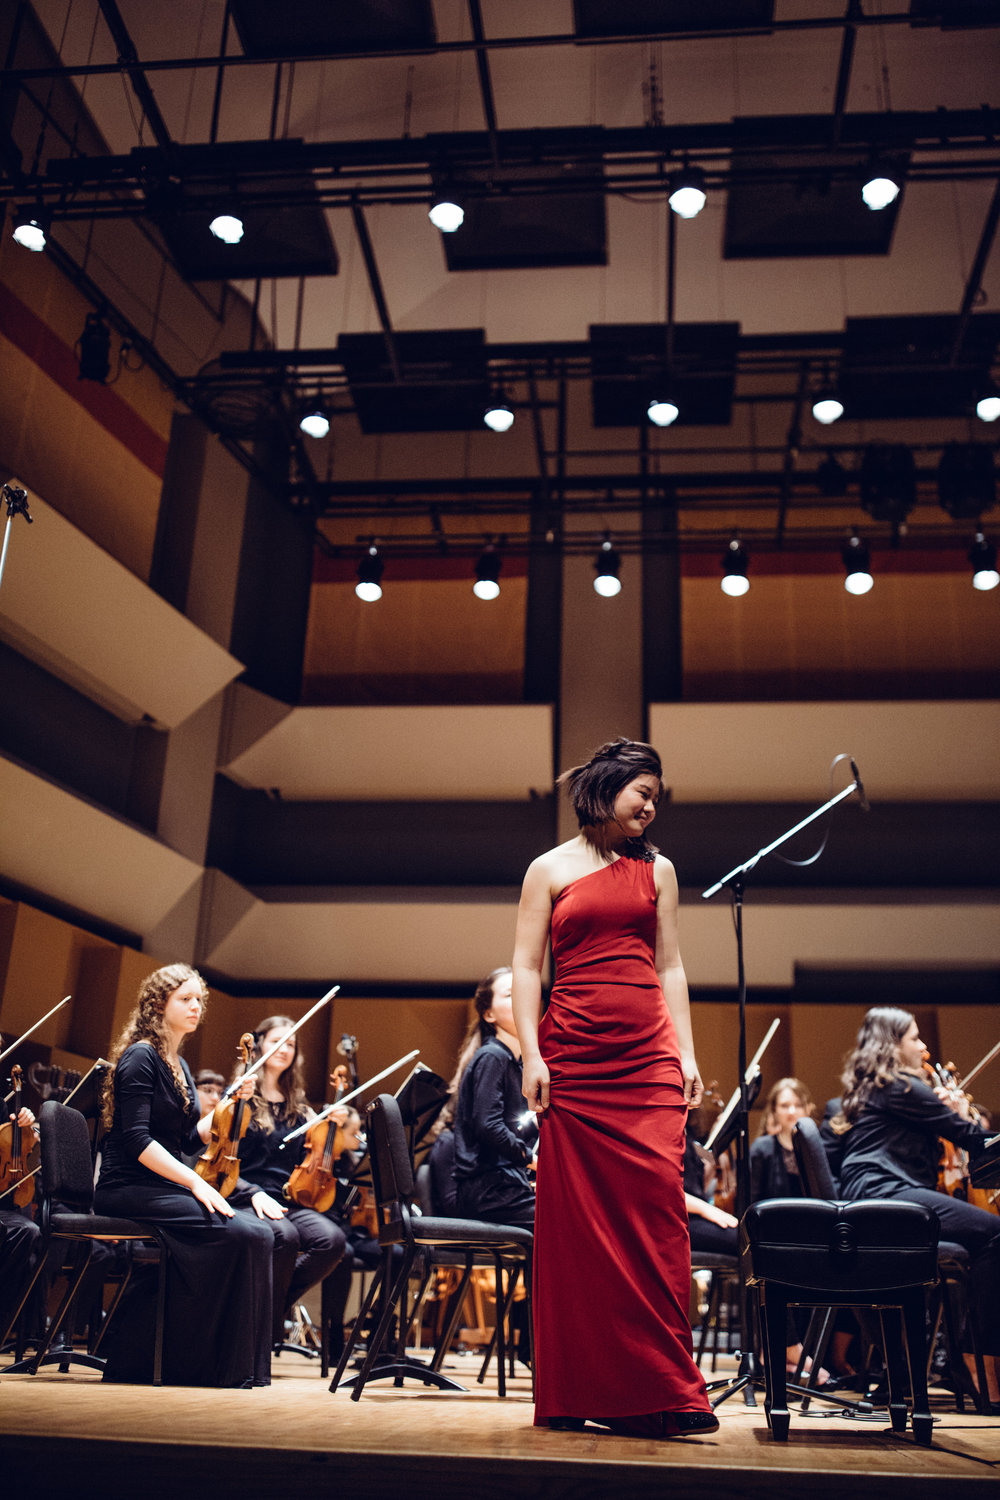 FAIRBANKS SYMPHONY ORCHESTRA MARCH 26-29, 2020